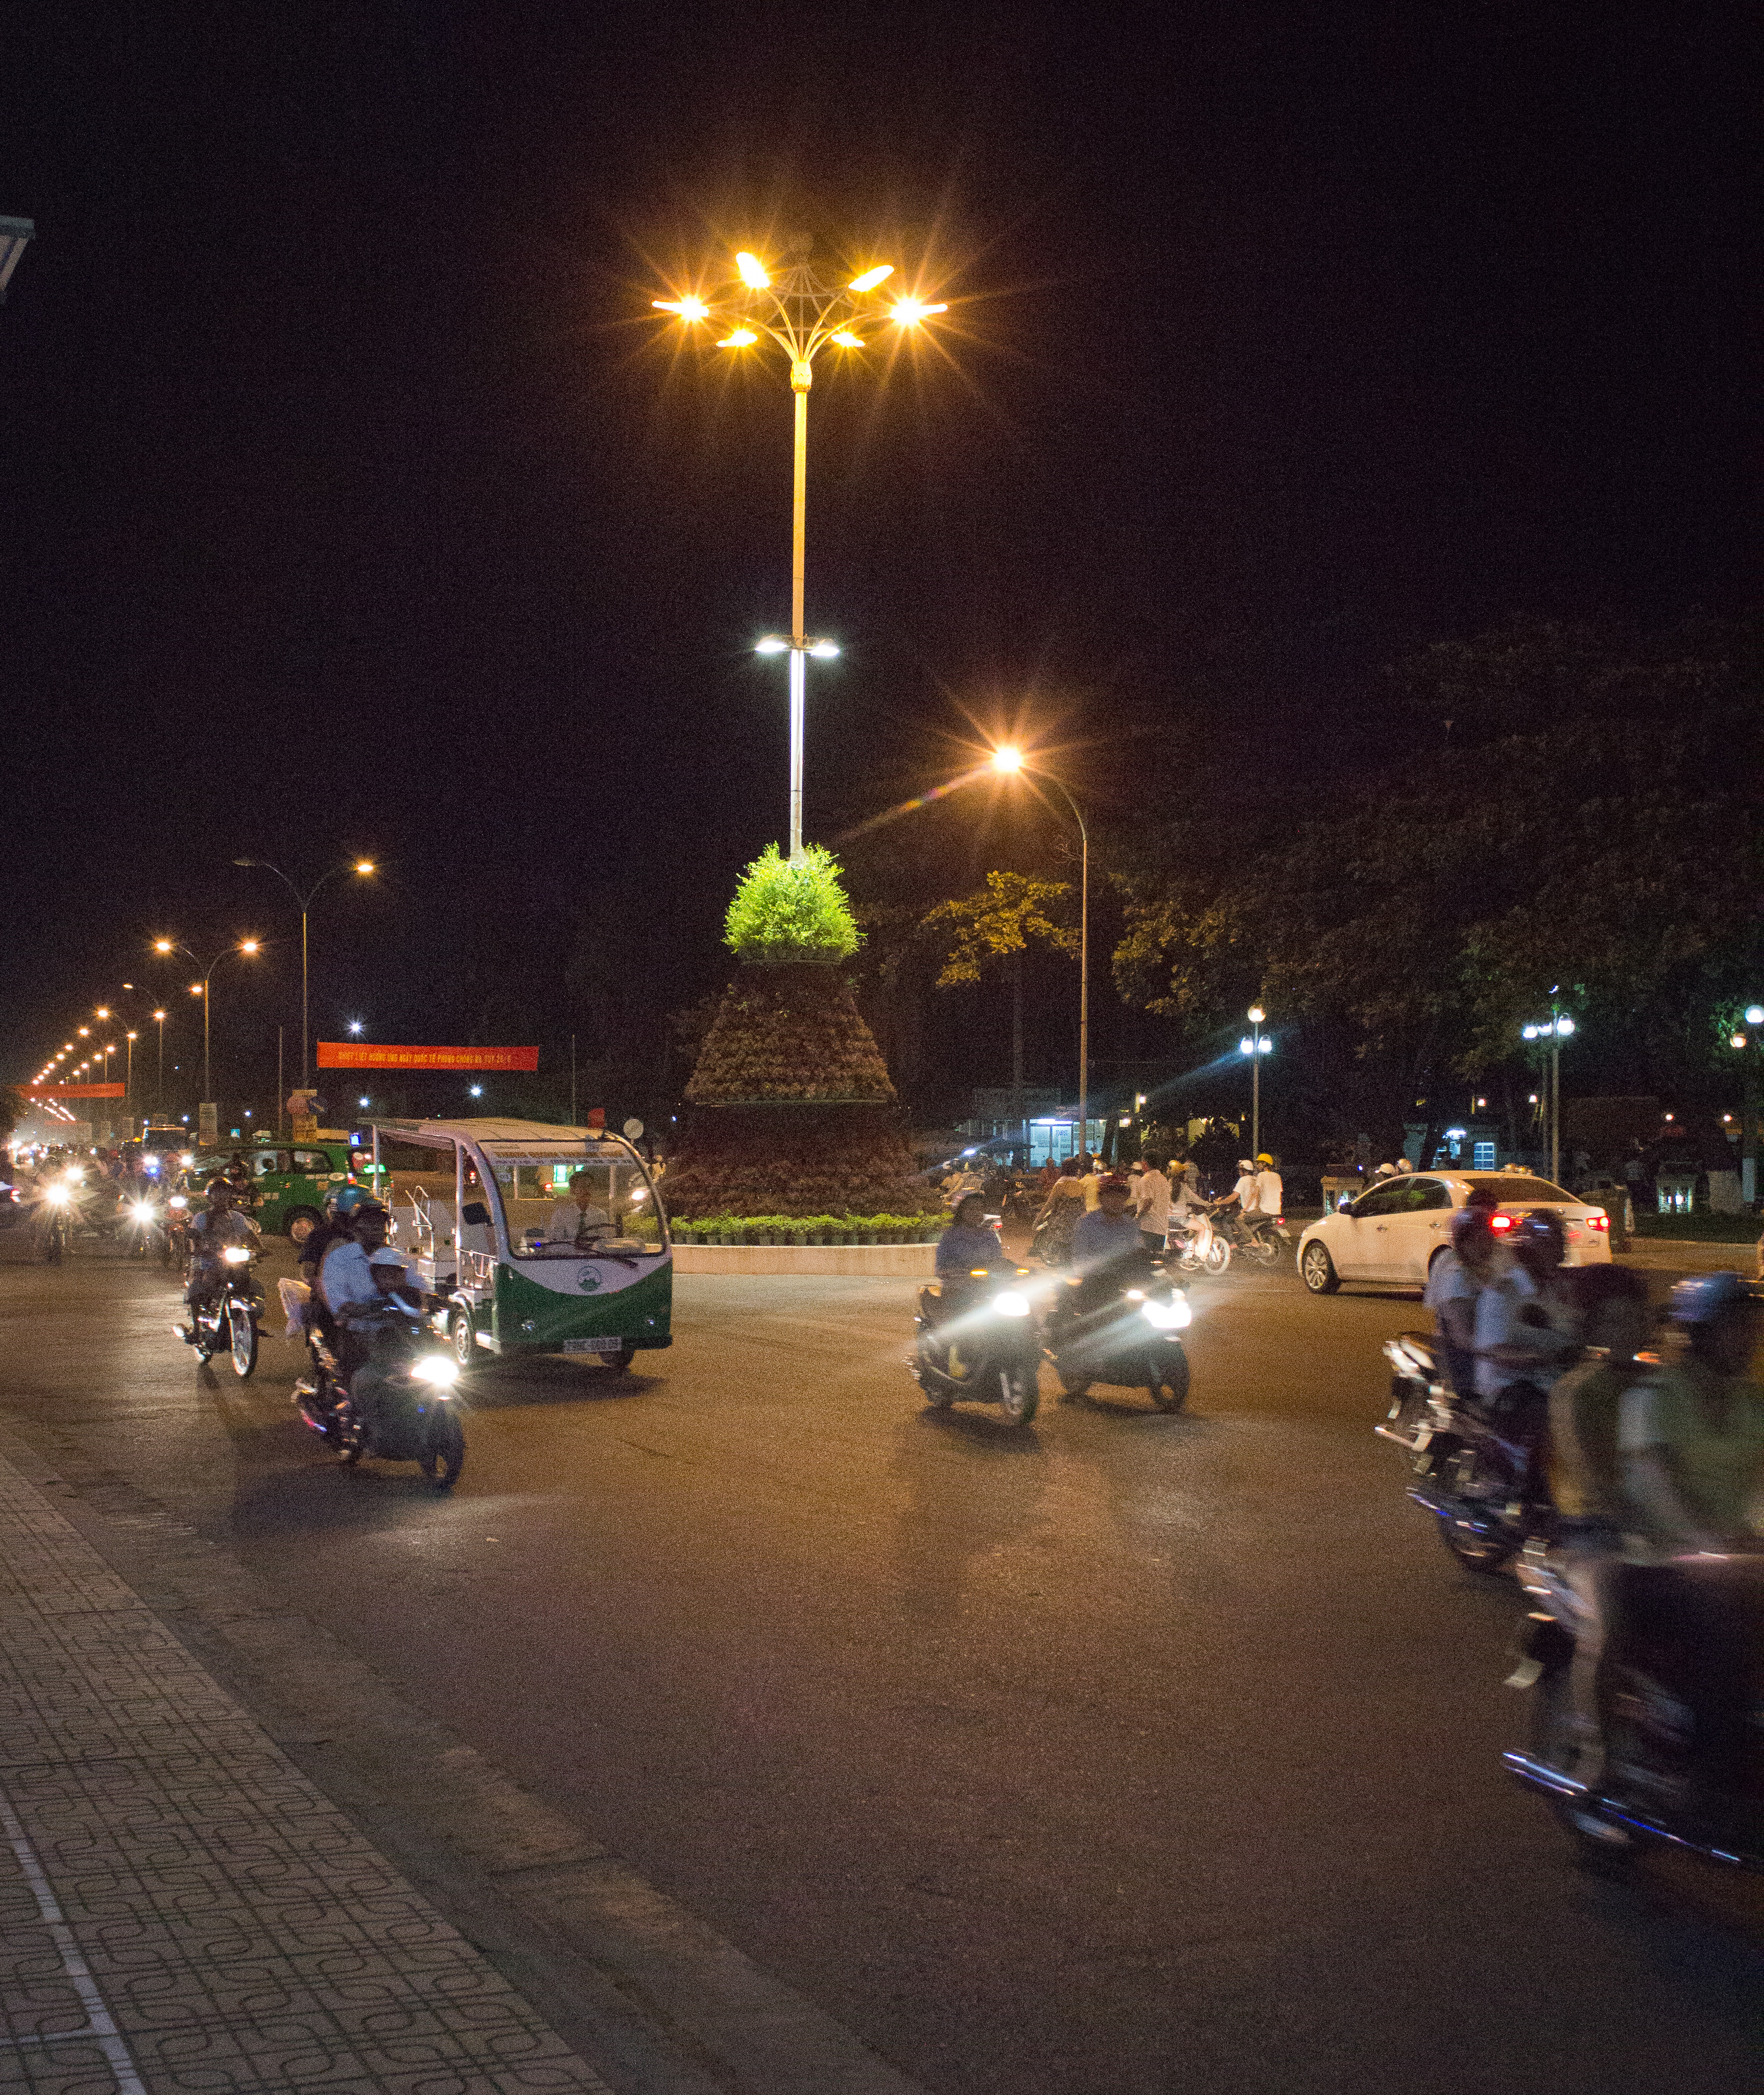 Motorbikes at Night